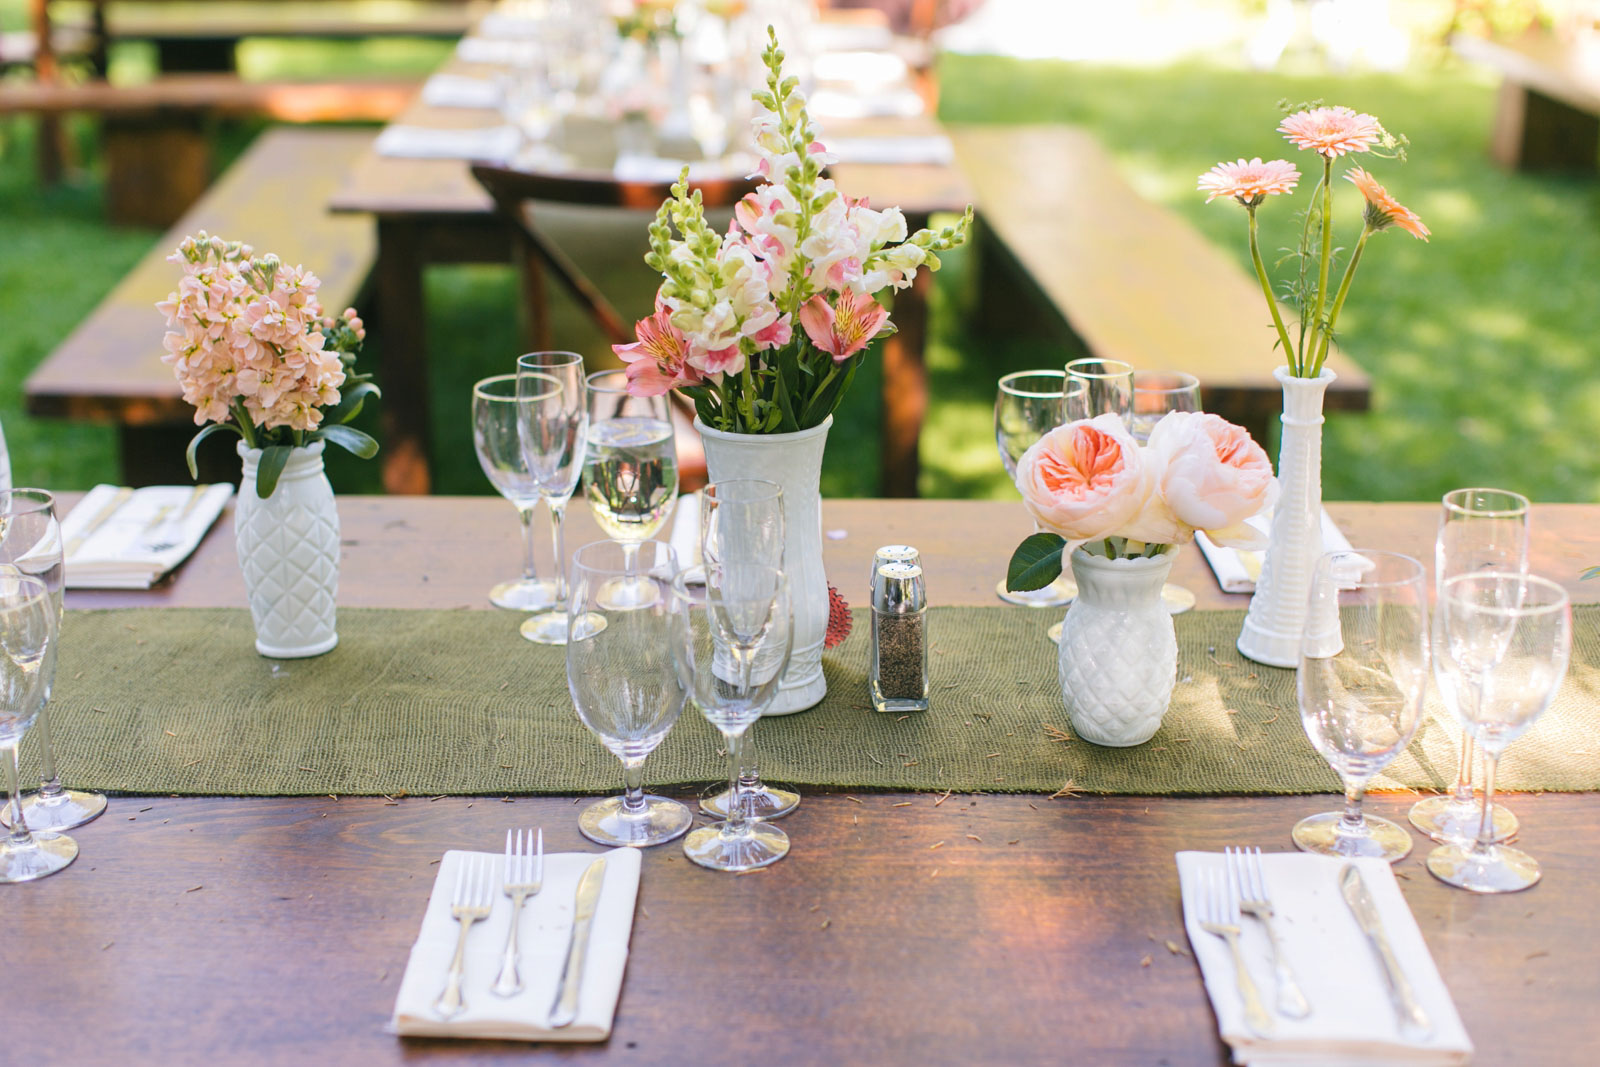 rustic table scape decor with salmon pink and light peach florals in antique white glass bud vases